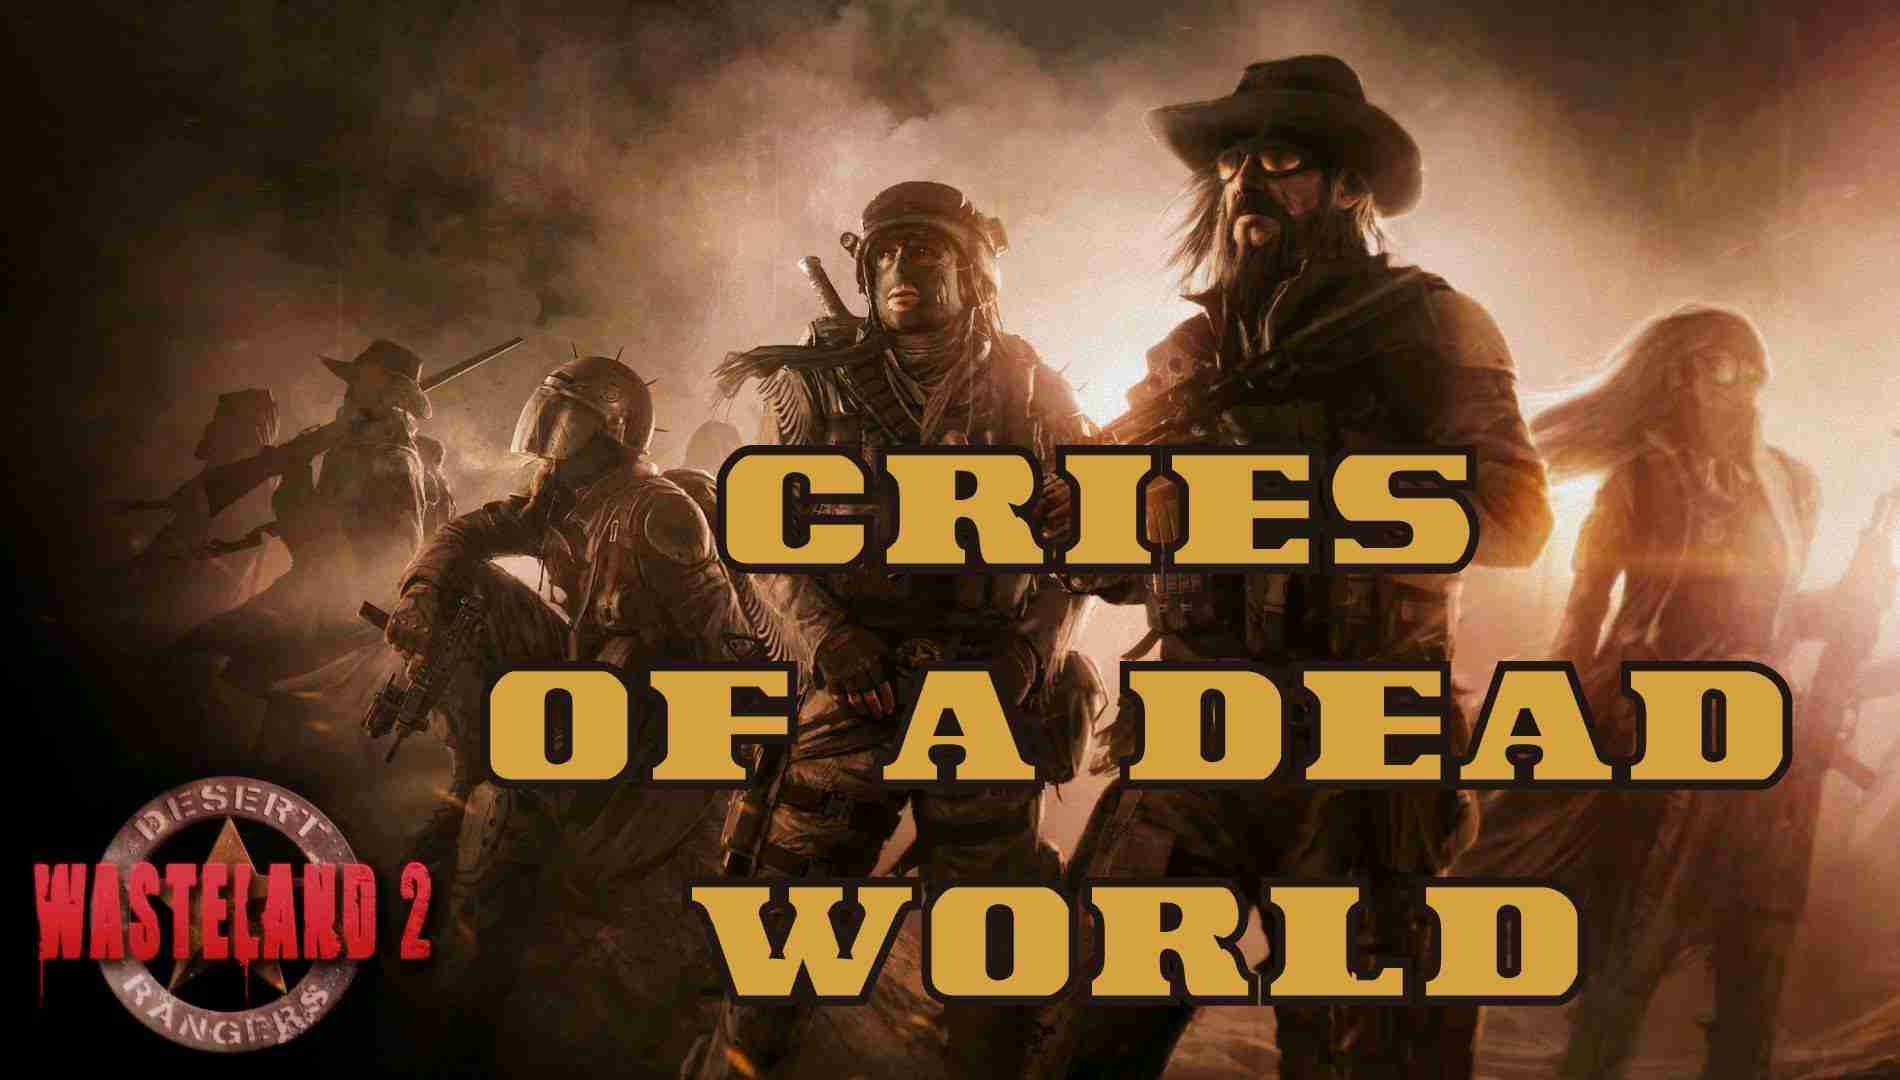 Cries Of A Dead World - Wasteland 2 Credits Song (Original Version) - YouTube